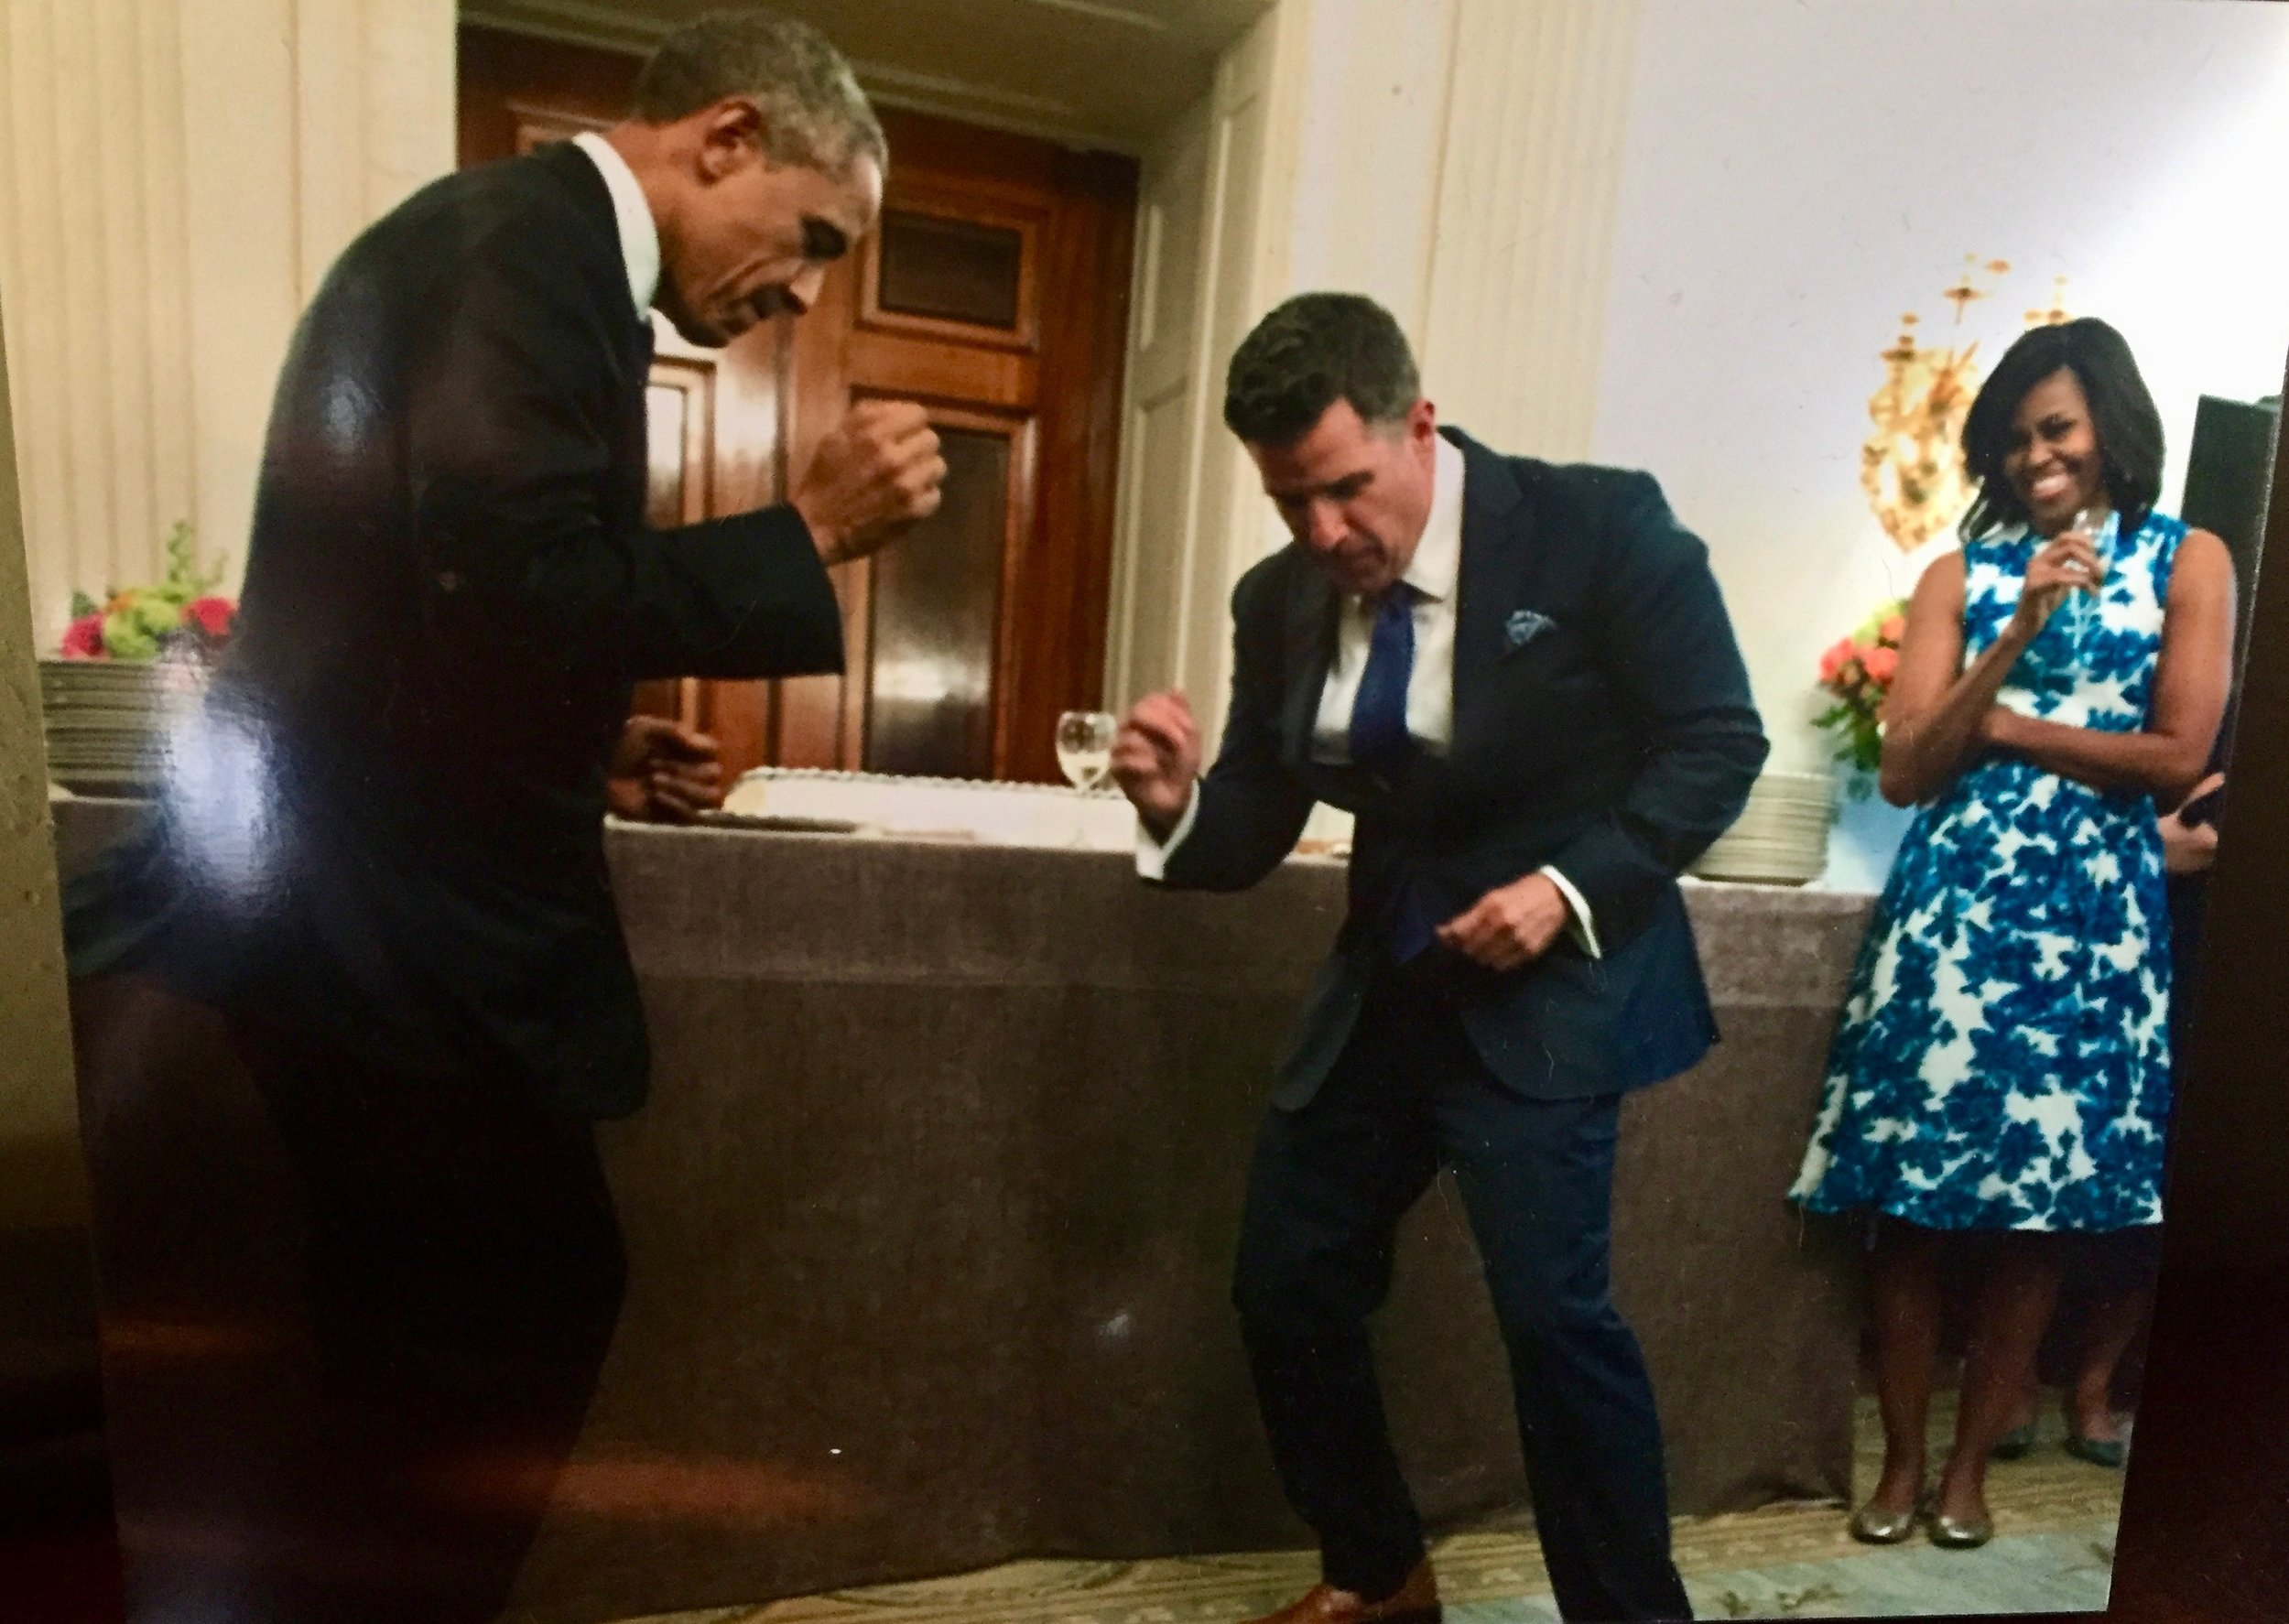 """This is a photo Dennis took of a photo in Jeremy's home. The President and Jeremy doing the """"Jeremy dance"""" together while Michelle Obama looks on and laughs."""